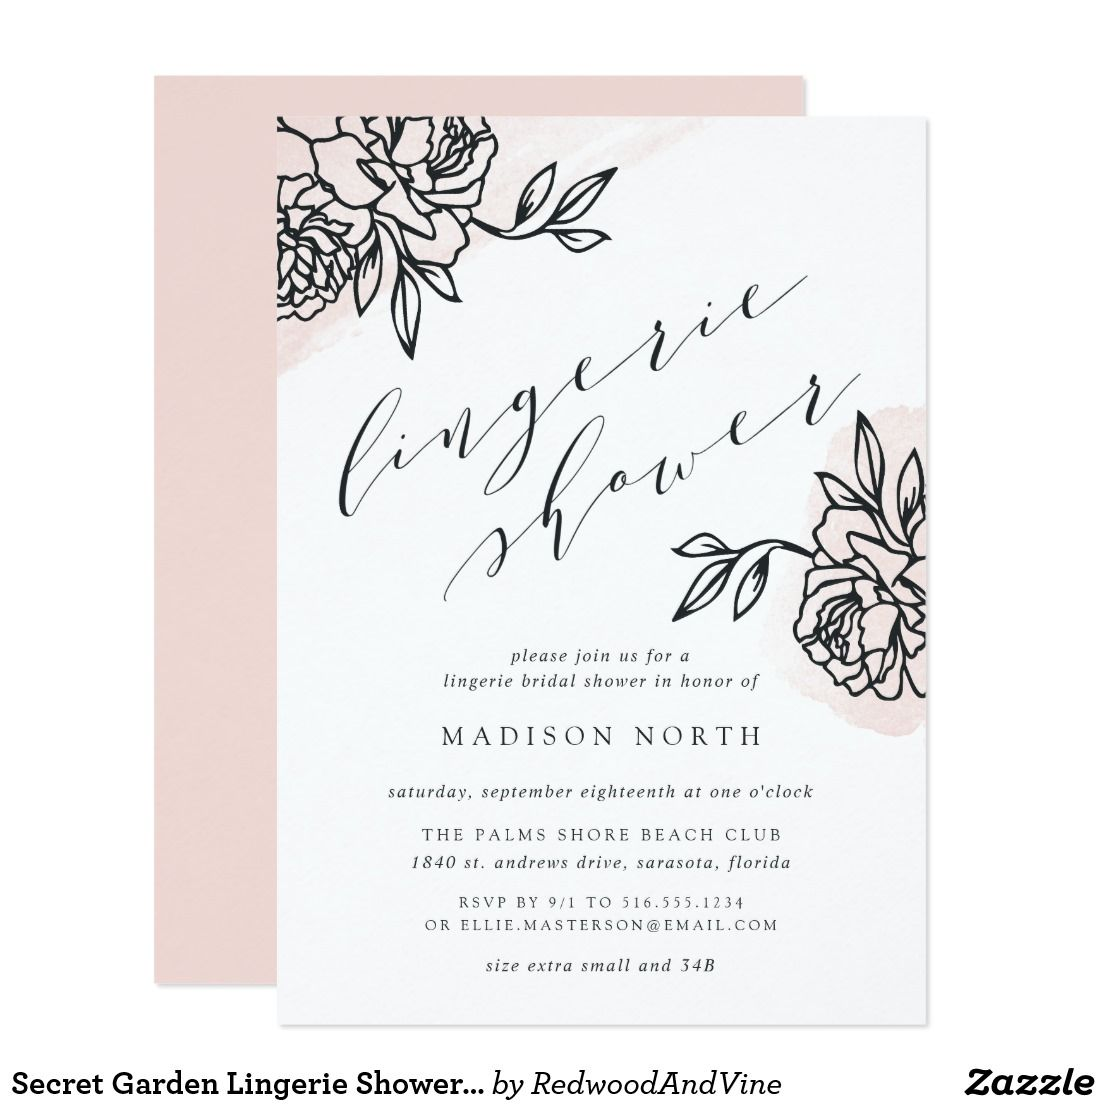 Secret Garden Lingerie Shower Invitation is part of Secret garden Invitations - Simple and elegant lingerie shower invitation chic offblack modern calligraphy lettering, flanked by vintage style floral outline illustrations on a sheer wash of blush pink watercolor  Personalize with your lingerie bridal shower details beneath  Invitations reverse to solid blush pink  Customize the paper type or shape to make this elegant design your own